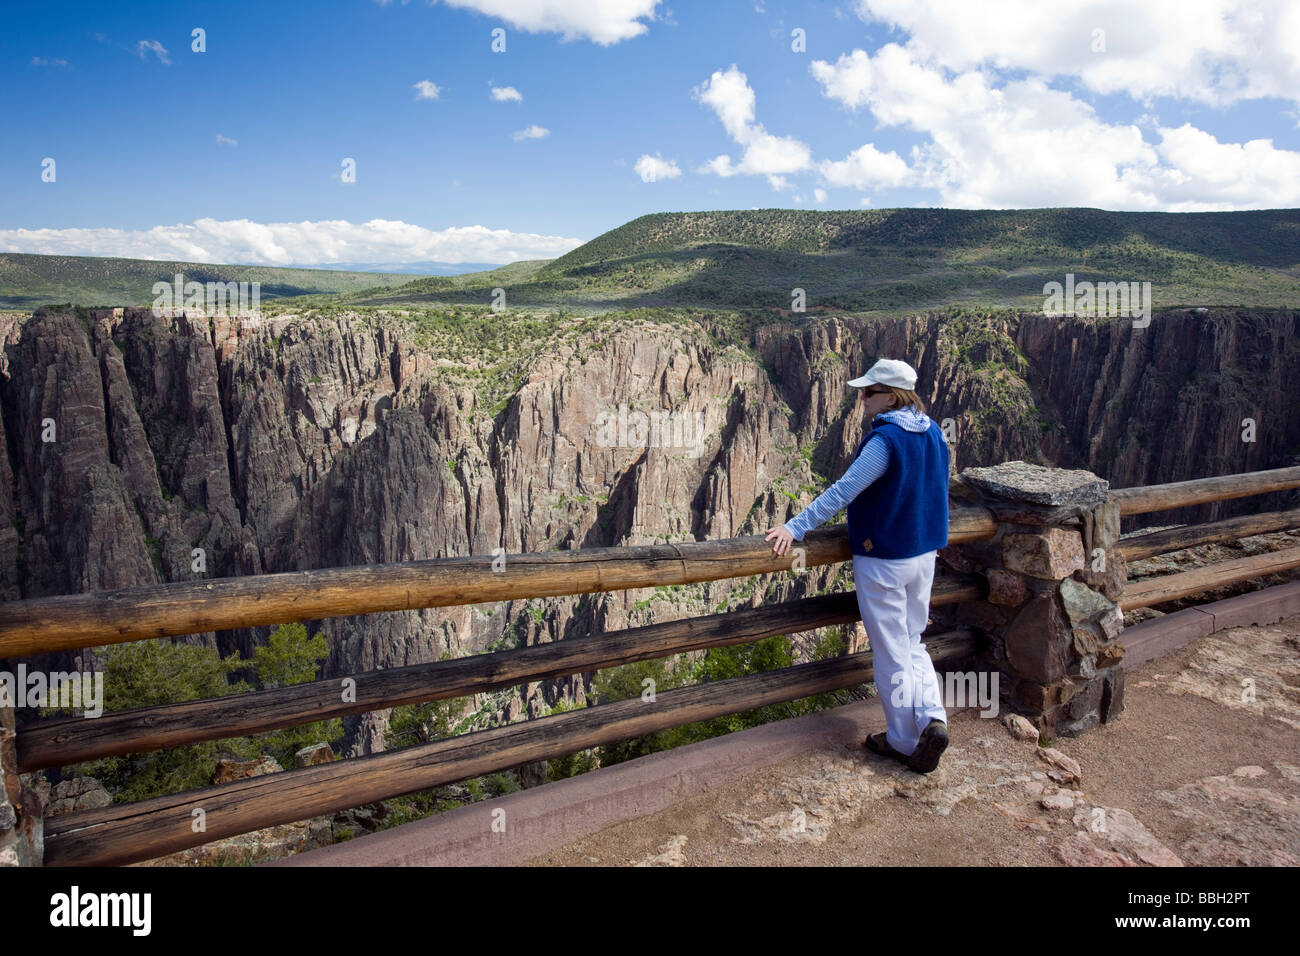 Female tourist at the Gunnison Point overlook near the Visitor Center Black Canyon of the Gunnison National Park - Stock Image